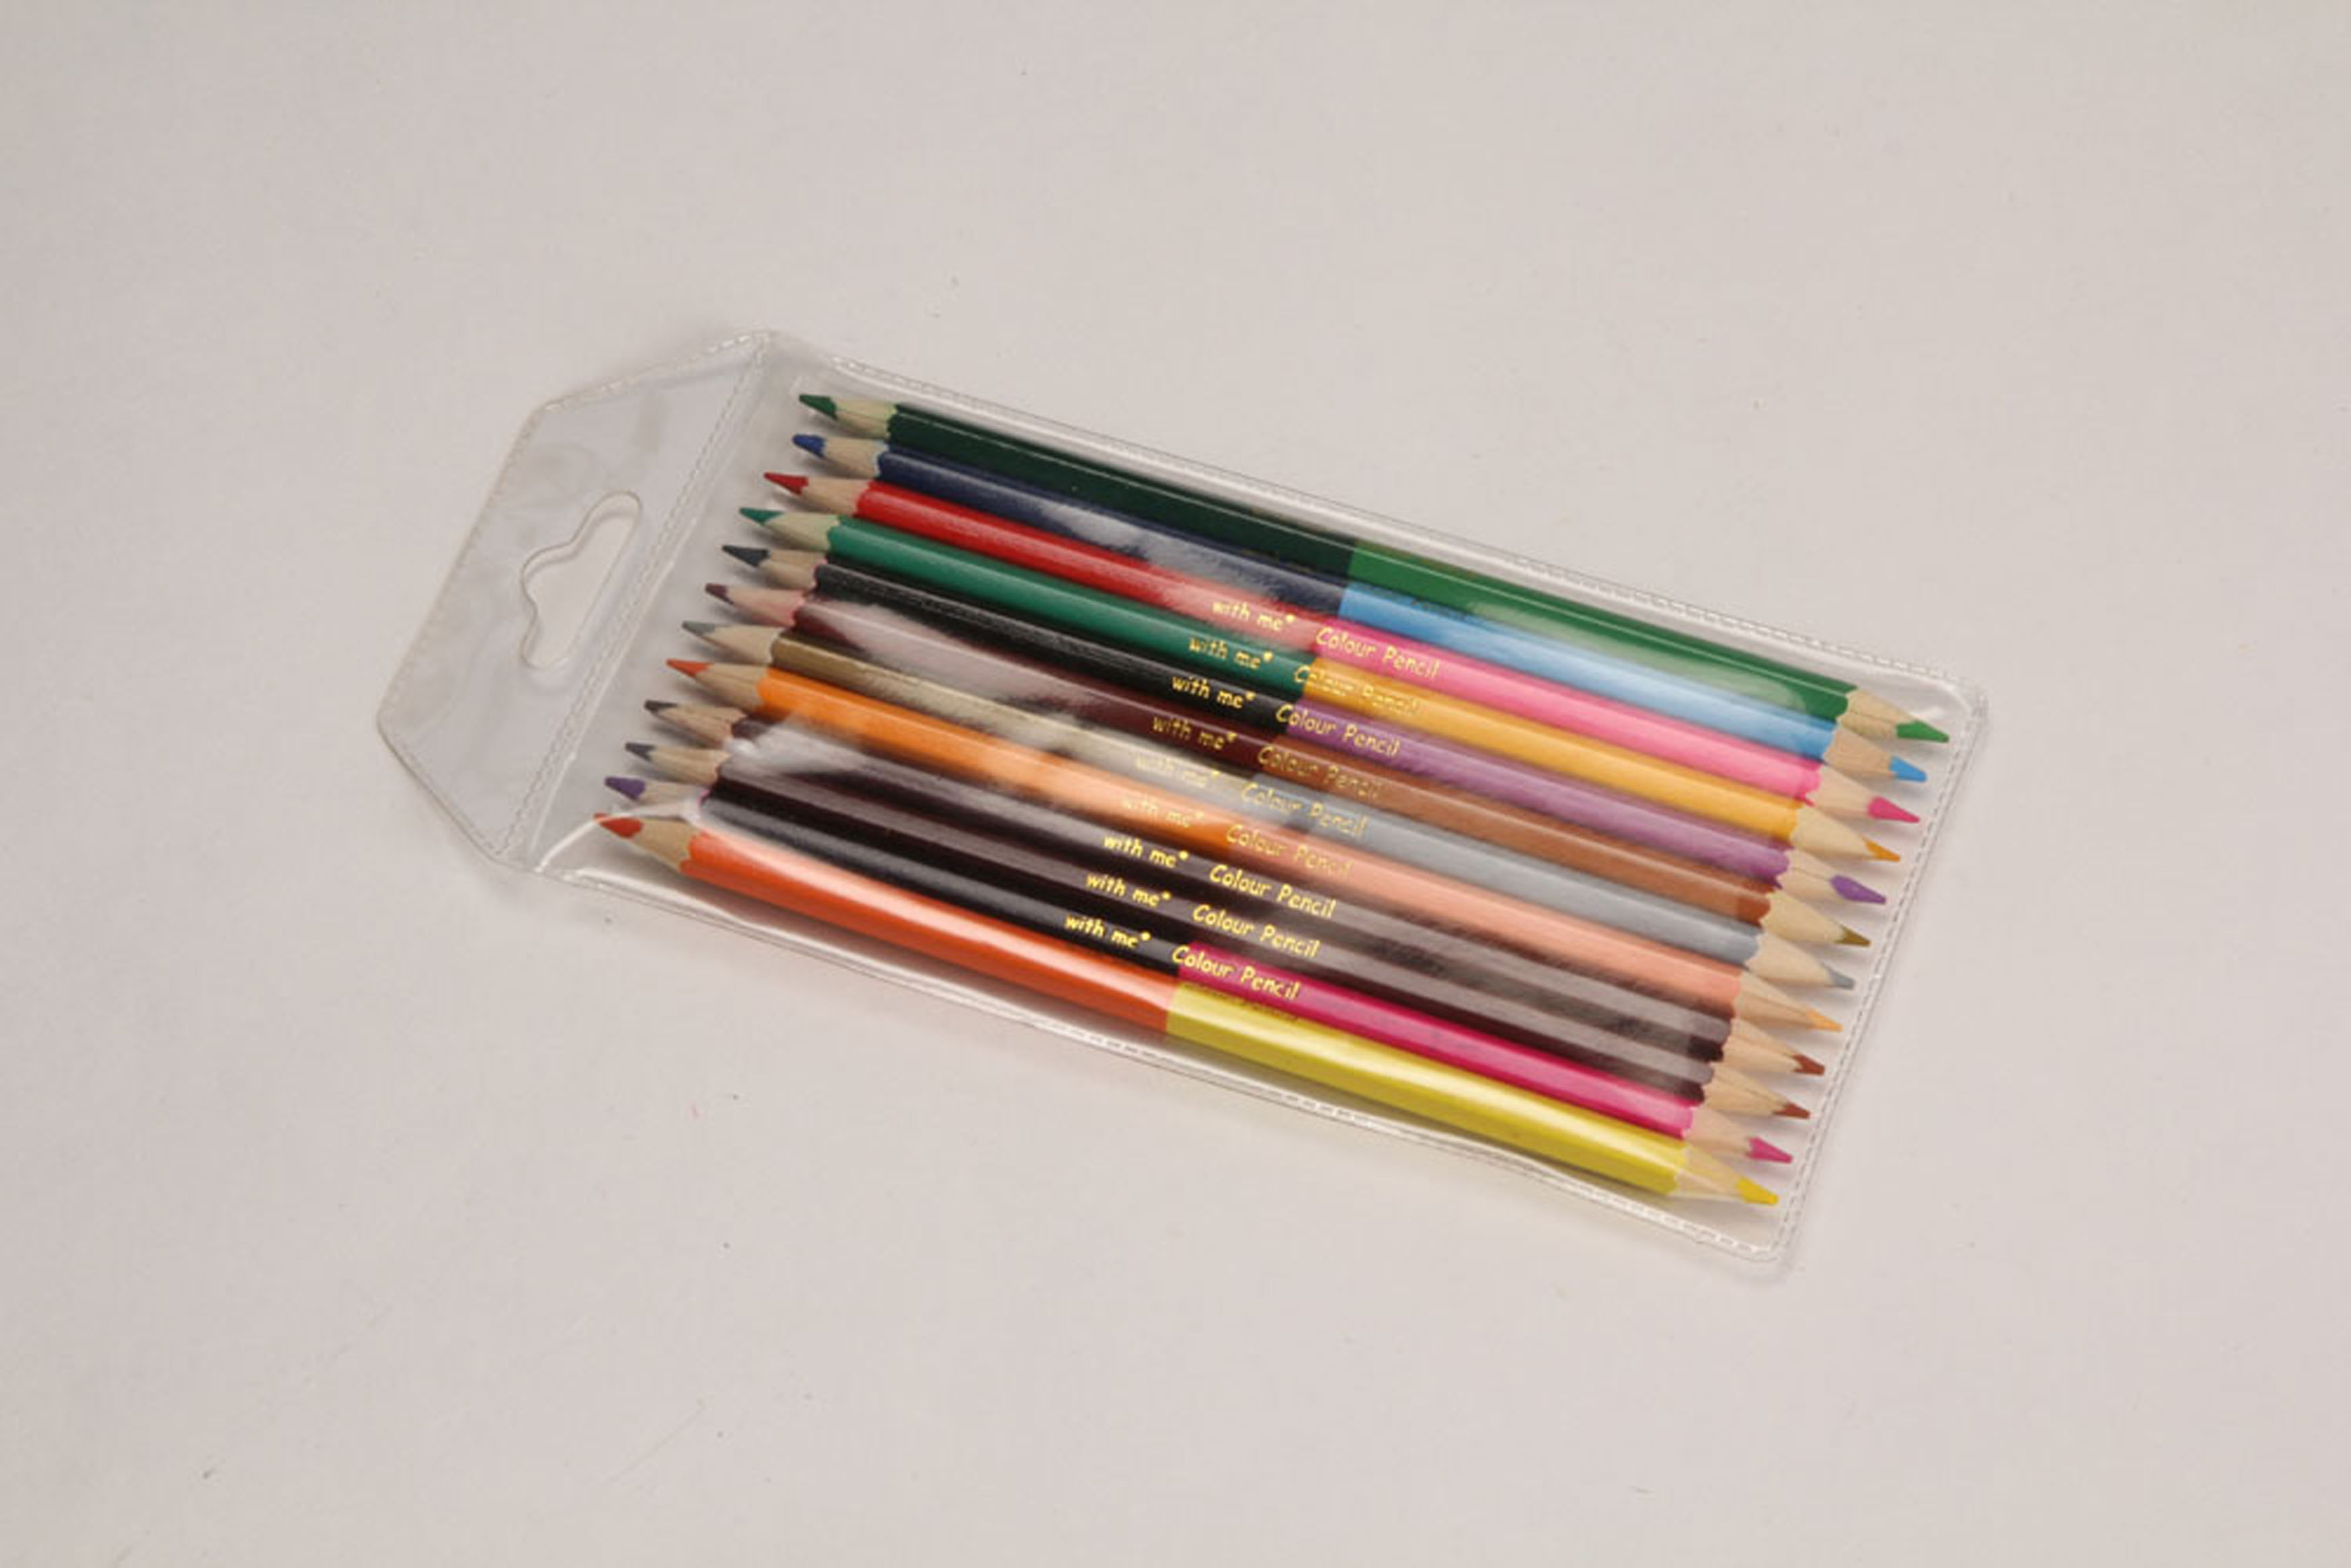 Bi-color pencils